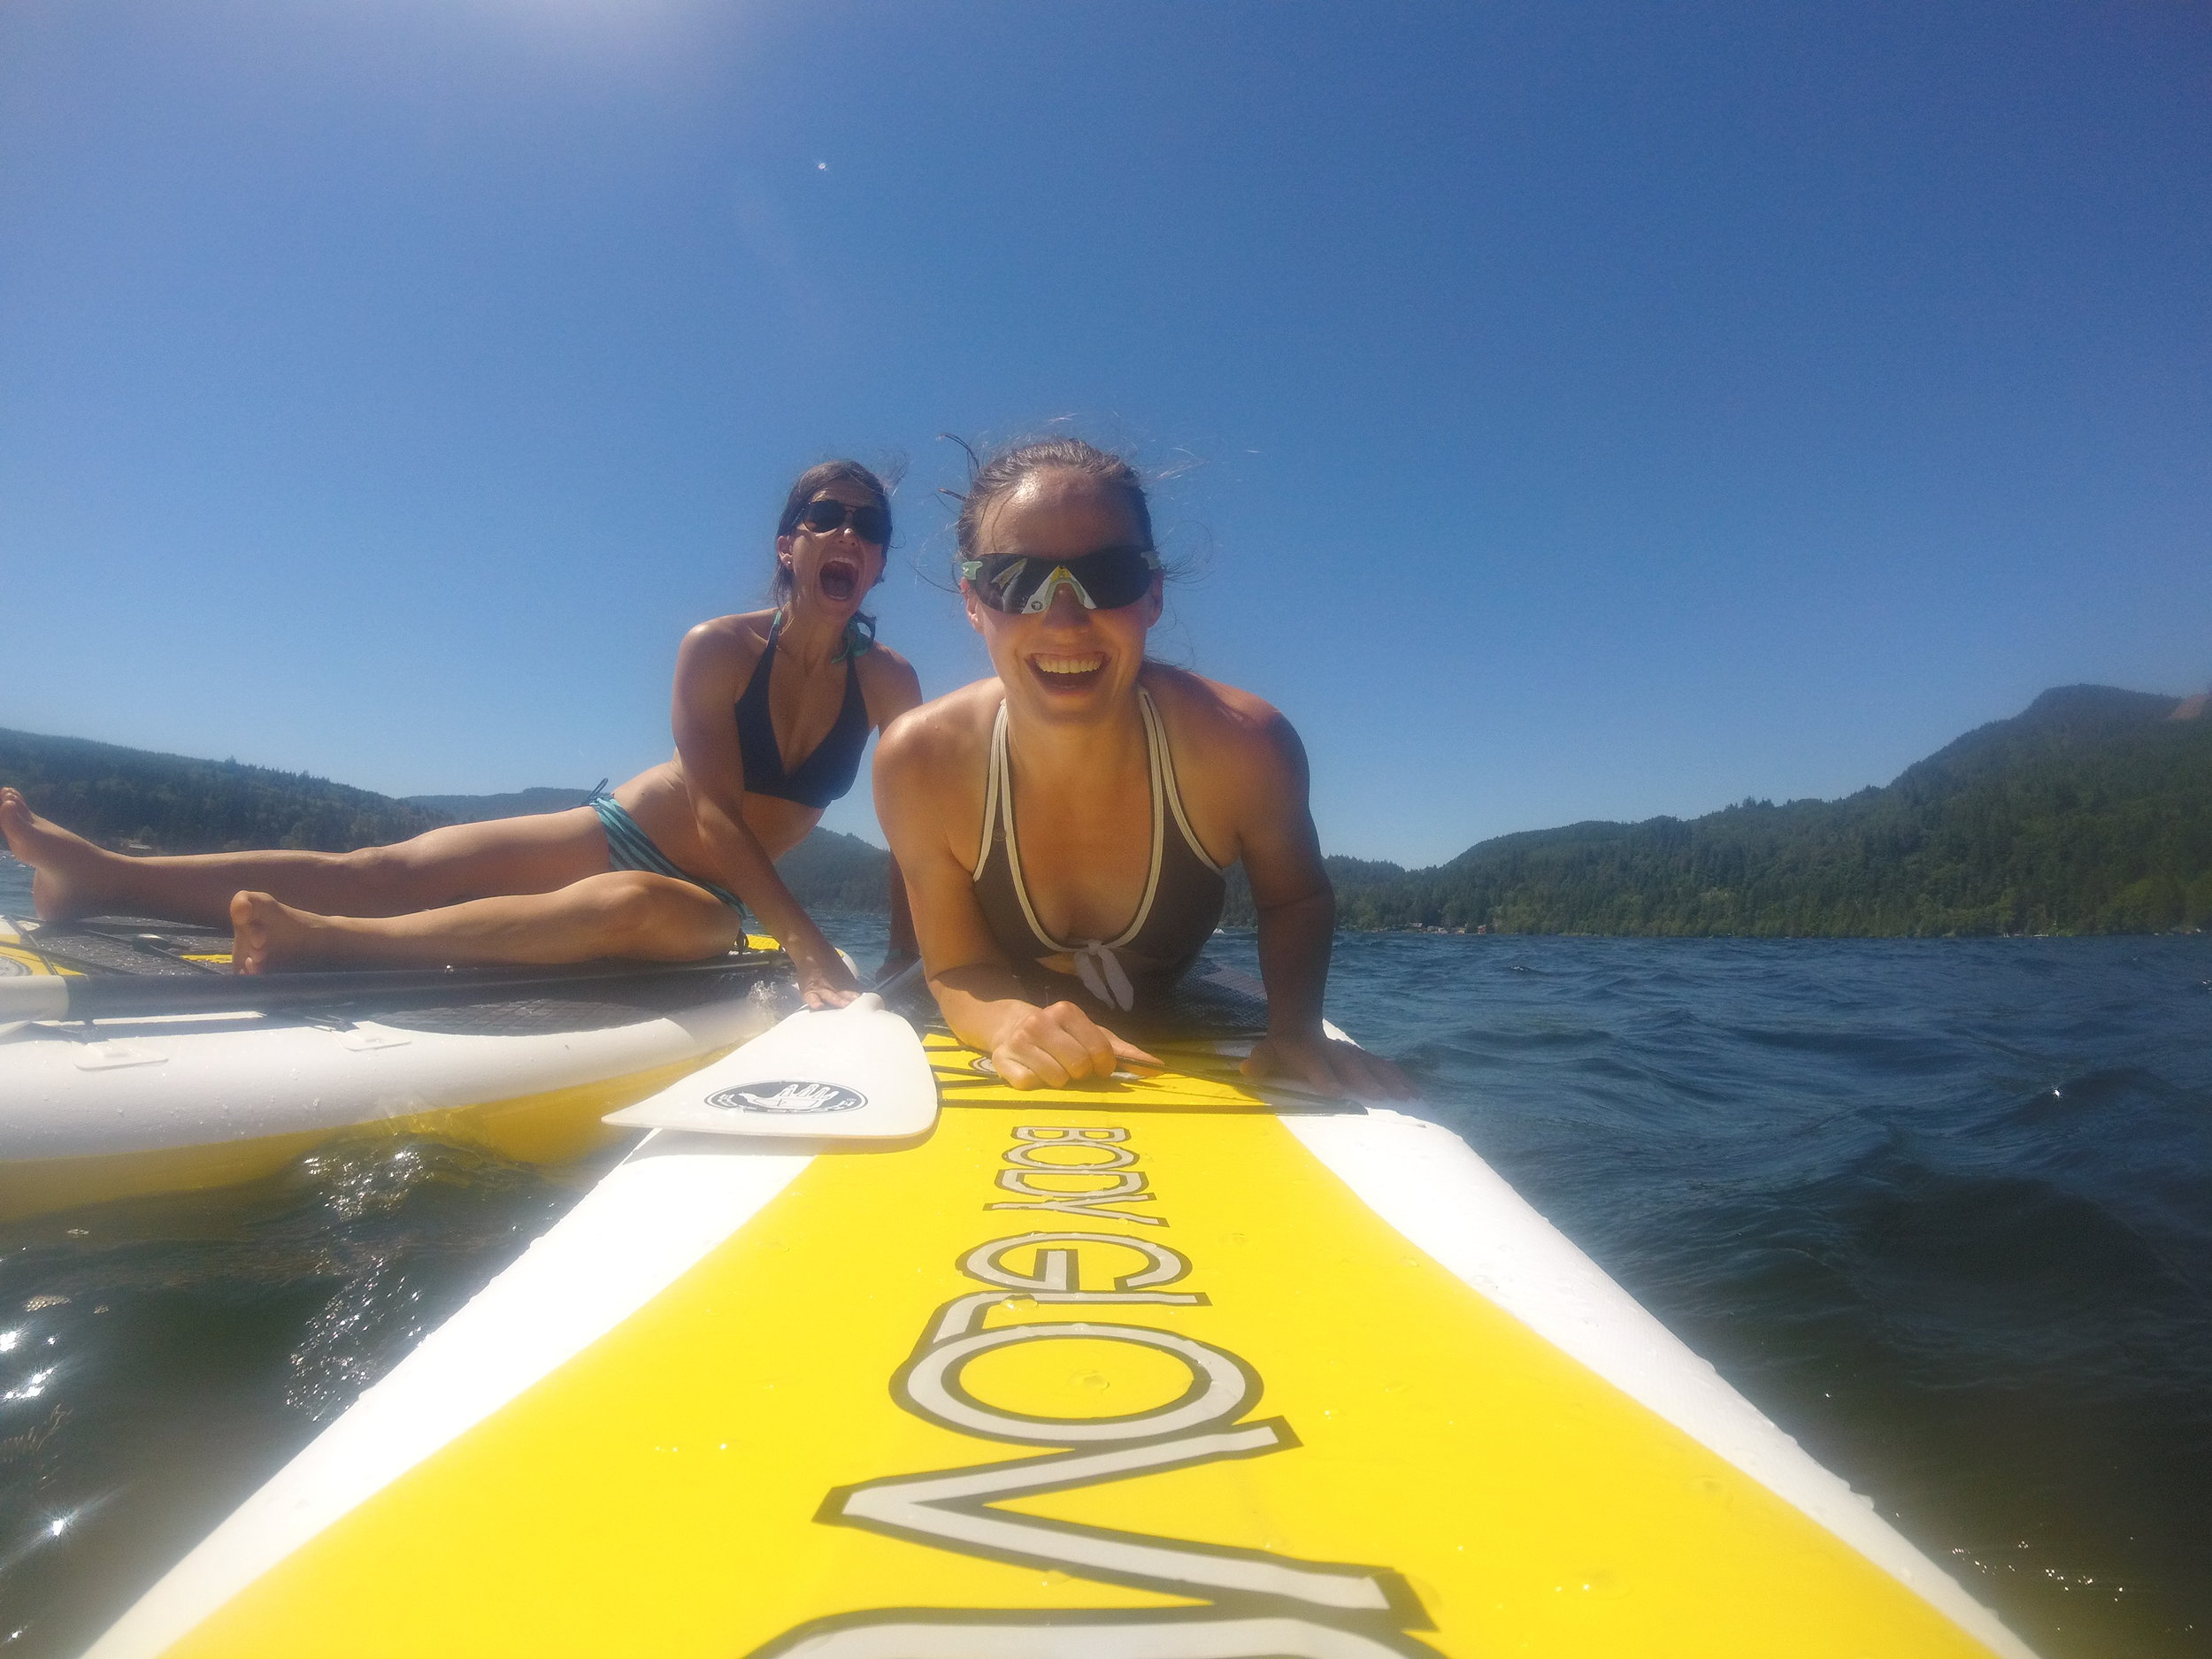 I've been getting out and enjoying my paddle board!